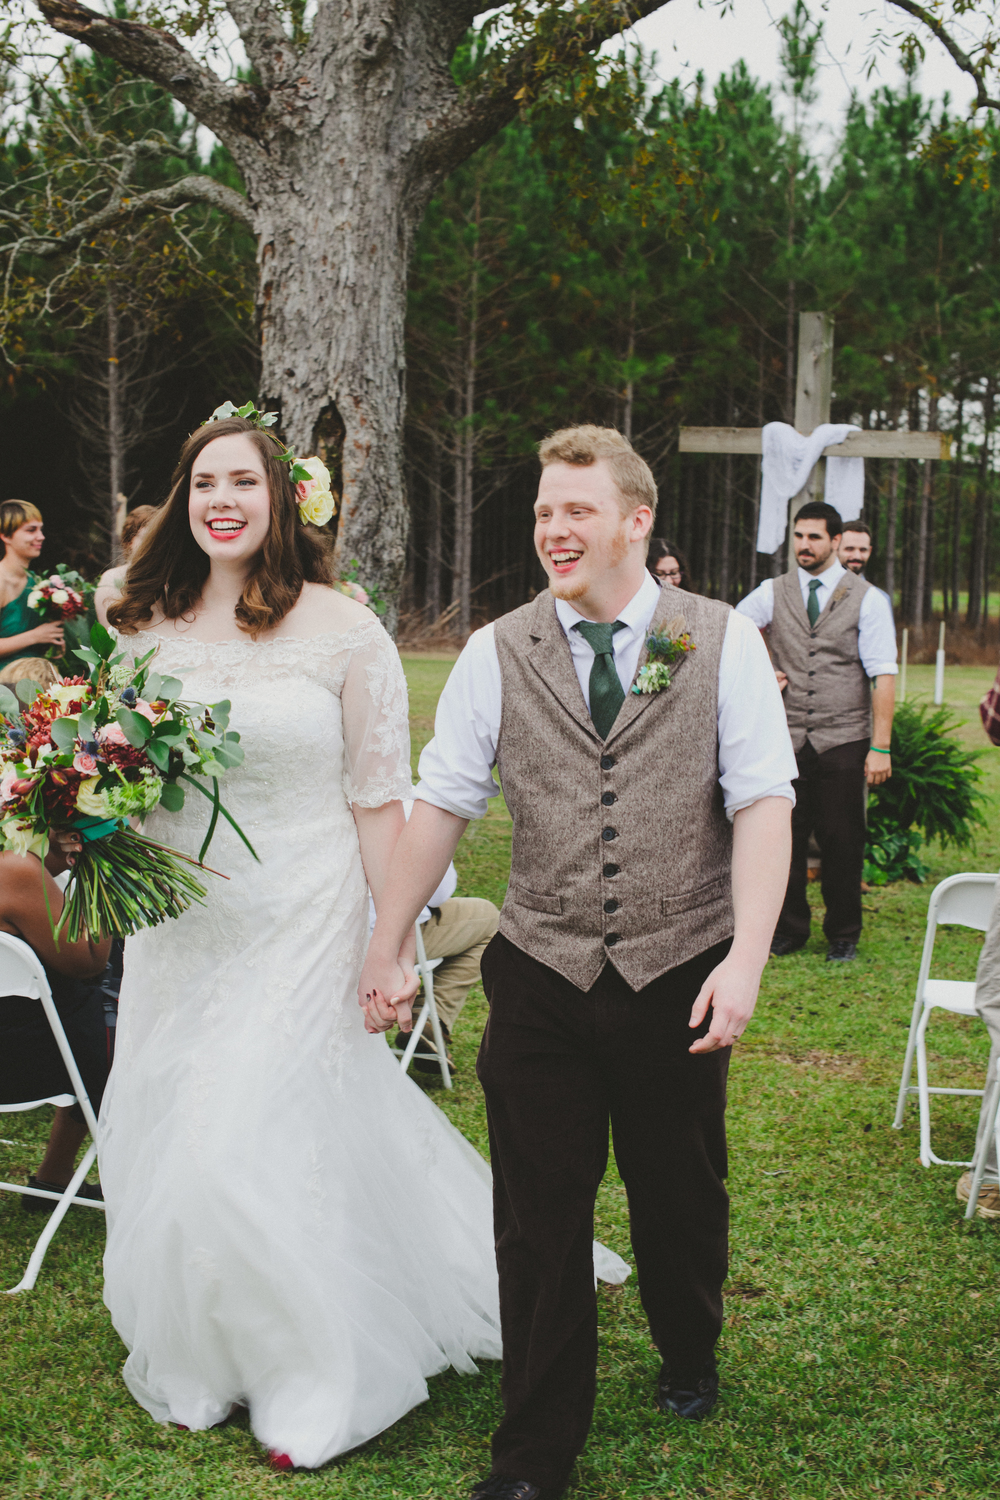 Ng-Photography-backyard-wedding-royal-hair-and-makeup-ivory-and-beau-wedding-planning-wedding-flowers-savannah-florist-savannah-flowers-savannah-weddings-savannah-wedding-savannah-event-planner-savannah-wedding-planner-savannah-rustic-wedding-16.jpg